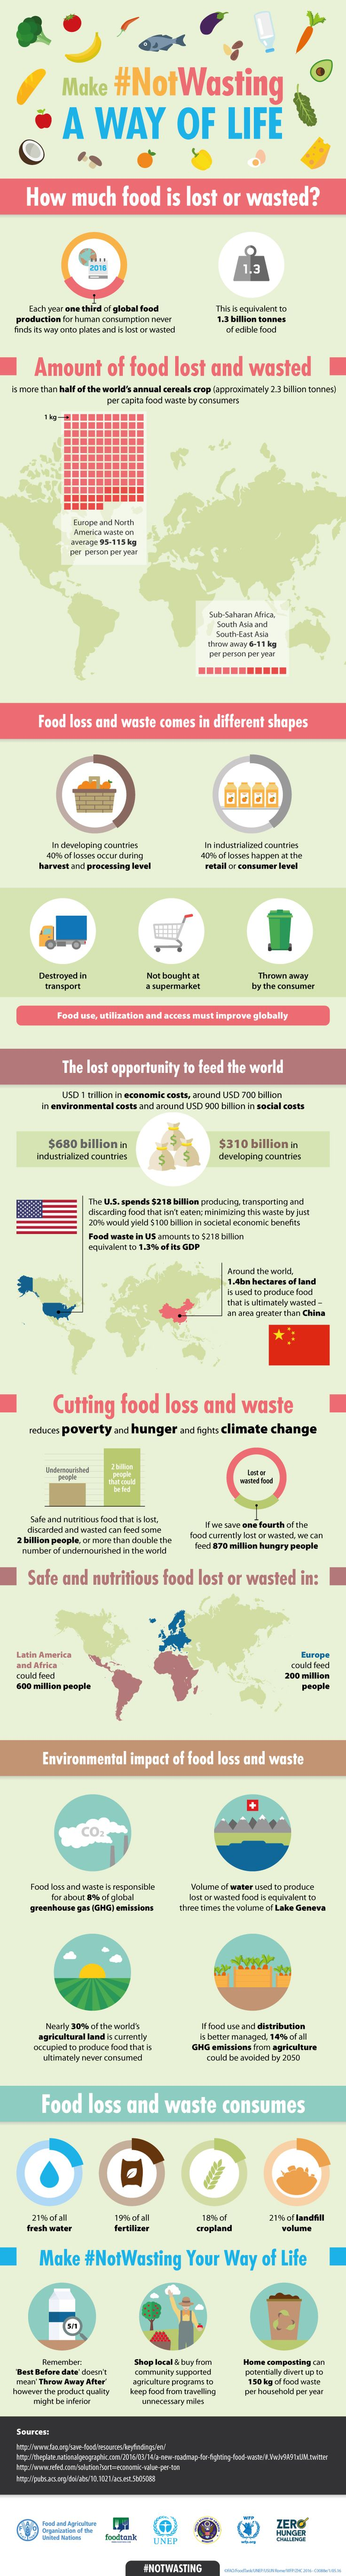 Each year one third of global food production for human consumption never finds its way onto plates and is lost or wasted. Cutting food loss and waste reduces poverty and hunger and fights climate change. Make #NotWasting Your Way of Life.